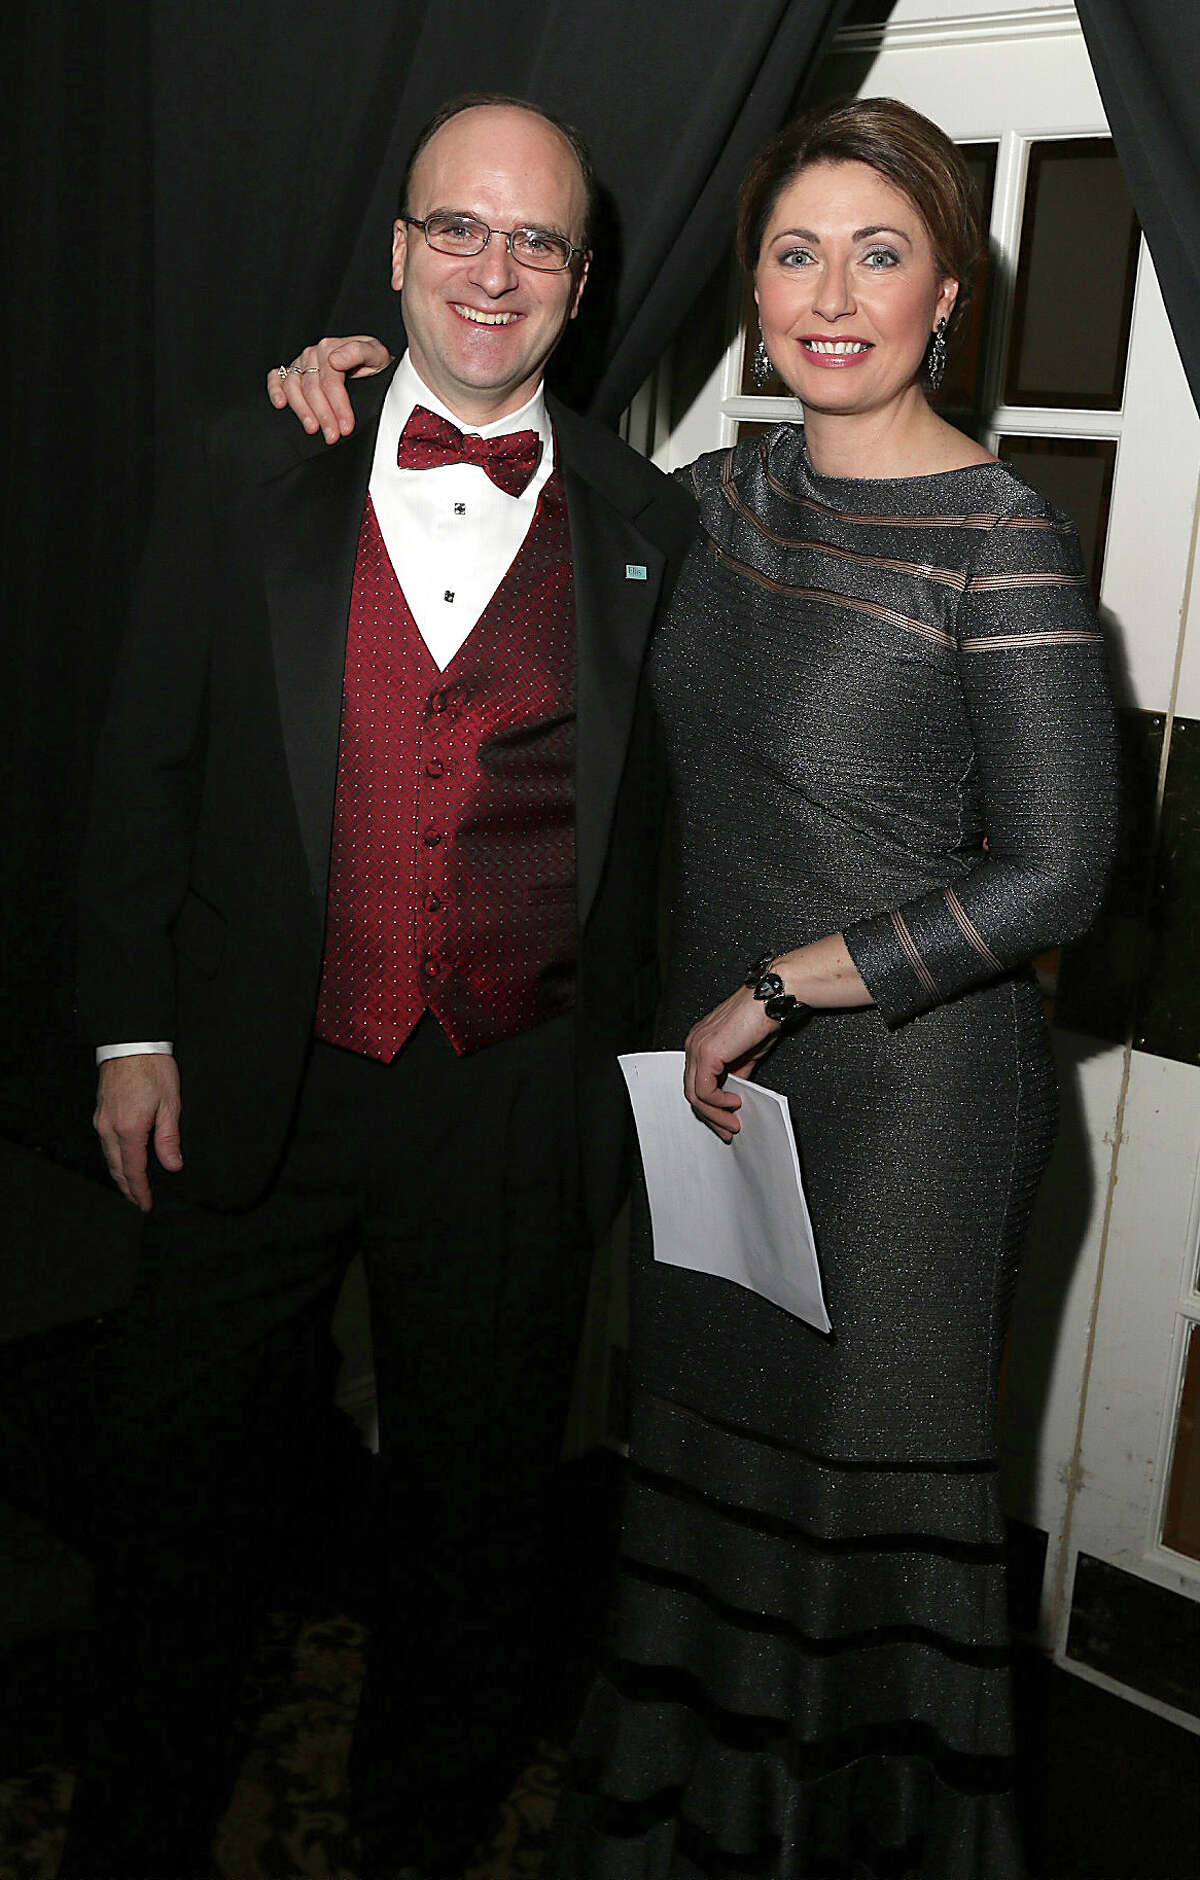 Were you Seen at the 12th Annual Winter Gala for Ellis Medicine at the Glen Sanders Mansion in Scotia on Saturday, Jan. 24, 2015? The event raises money to support the new Center for Surgical and Interventional Medicine at Ellis Hospital.